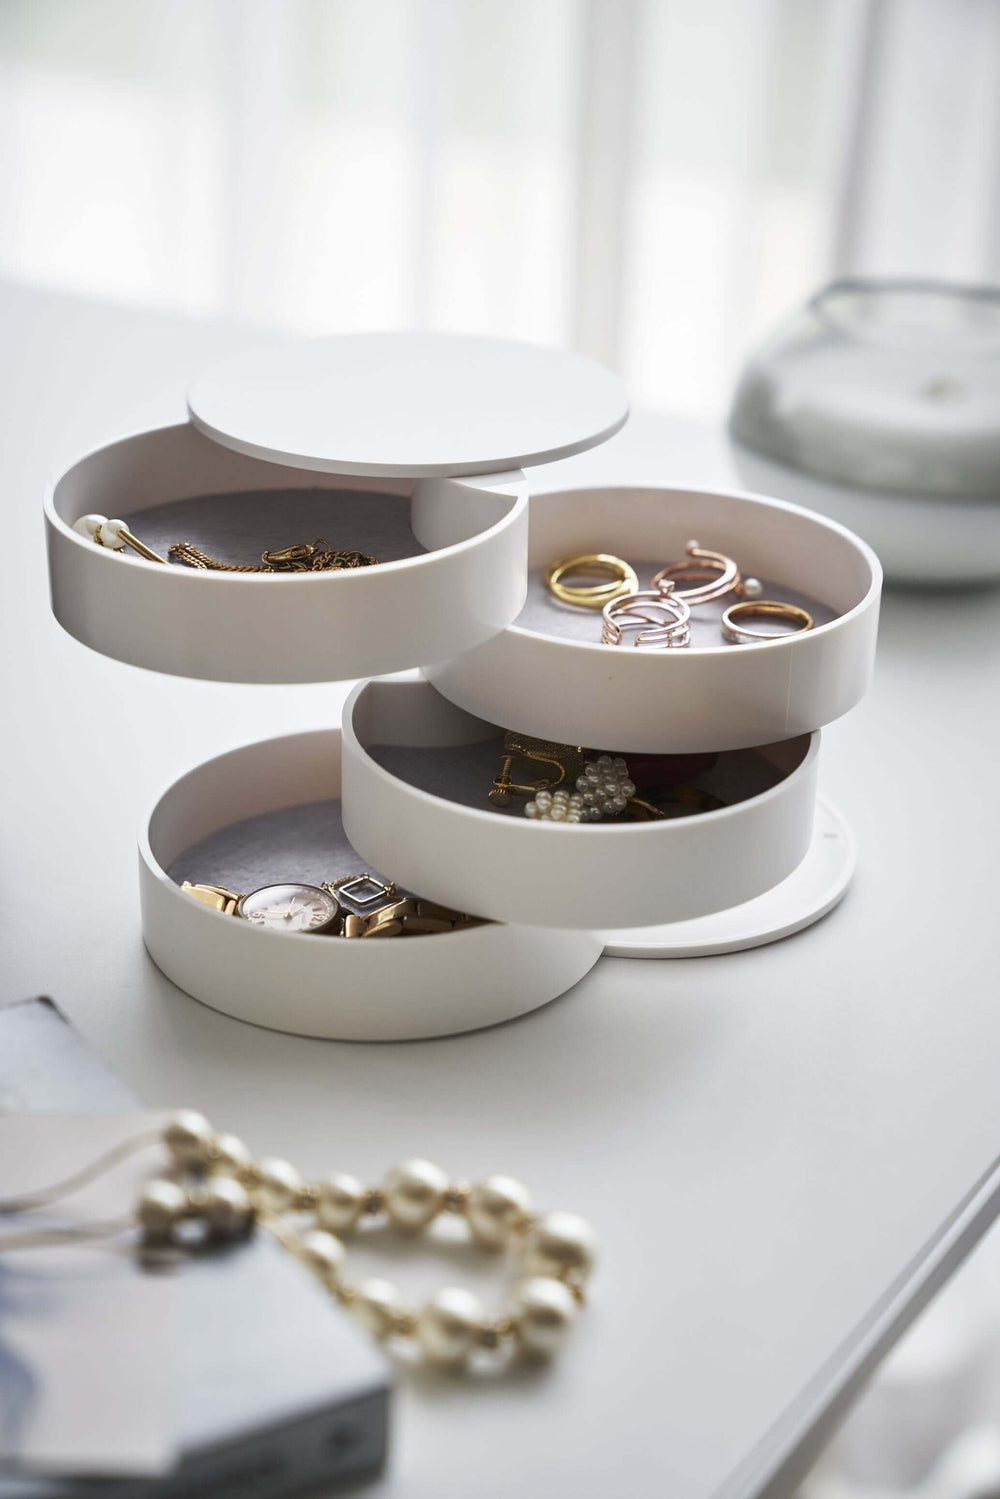 Yamazaki's 4-Tiered Accessory Tray on a table with various jewelry pieces and accessories inside the various stacked round compartments.